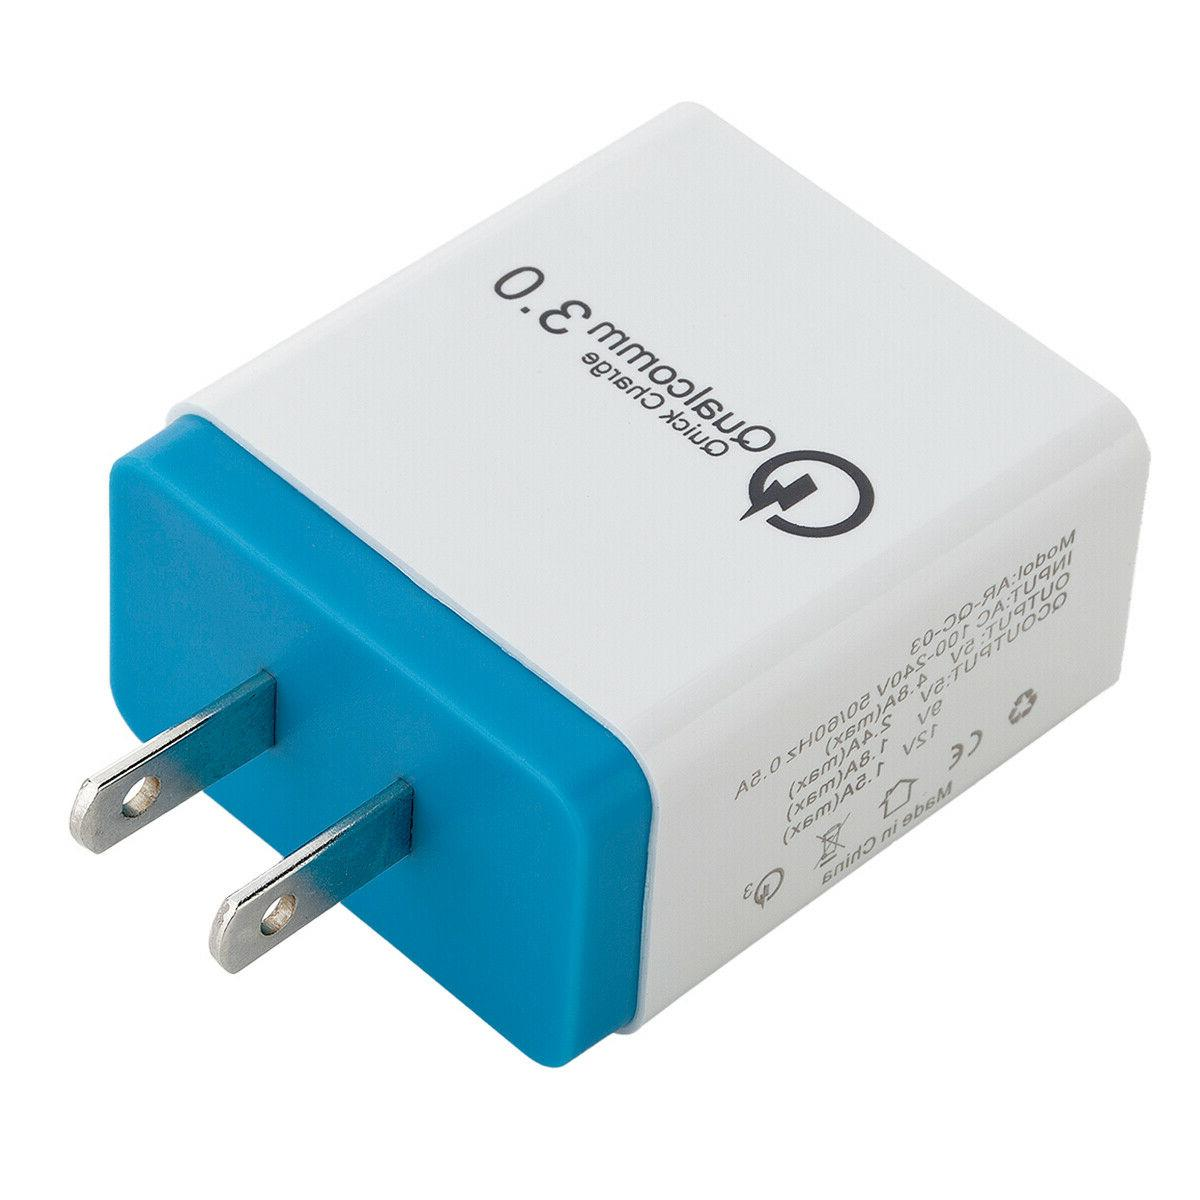 30W Fast QC 3.0 USB Charger Plug For iPhone/Samsung